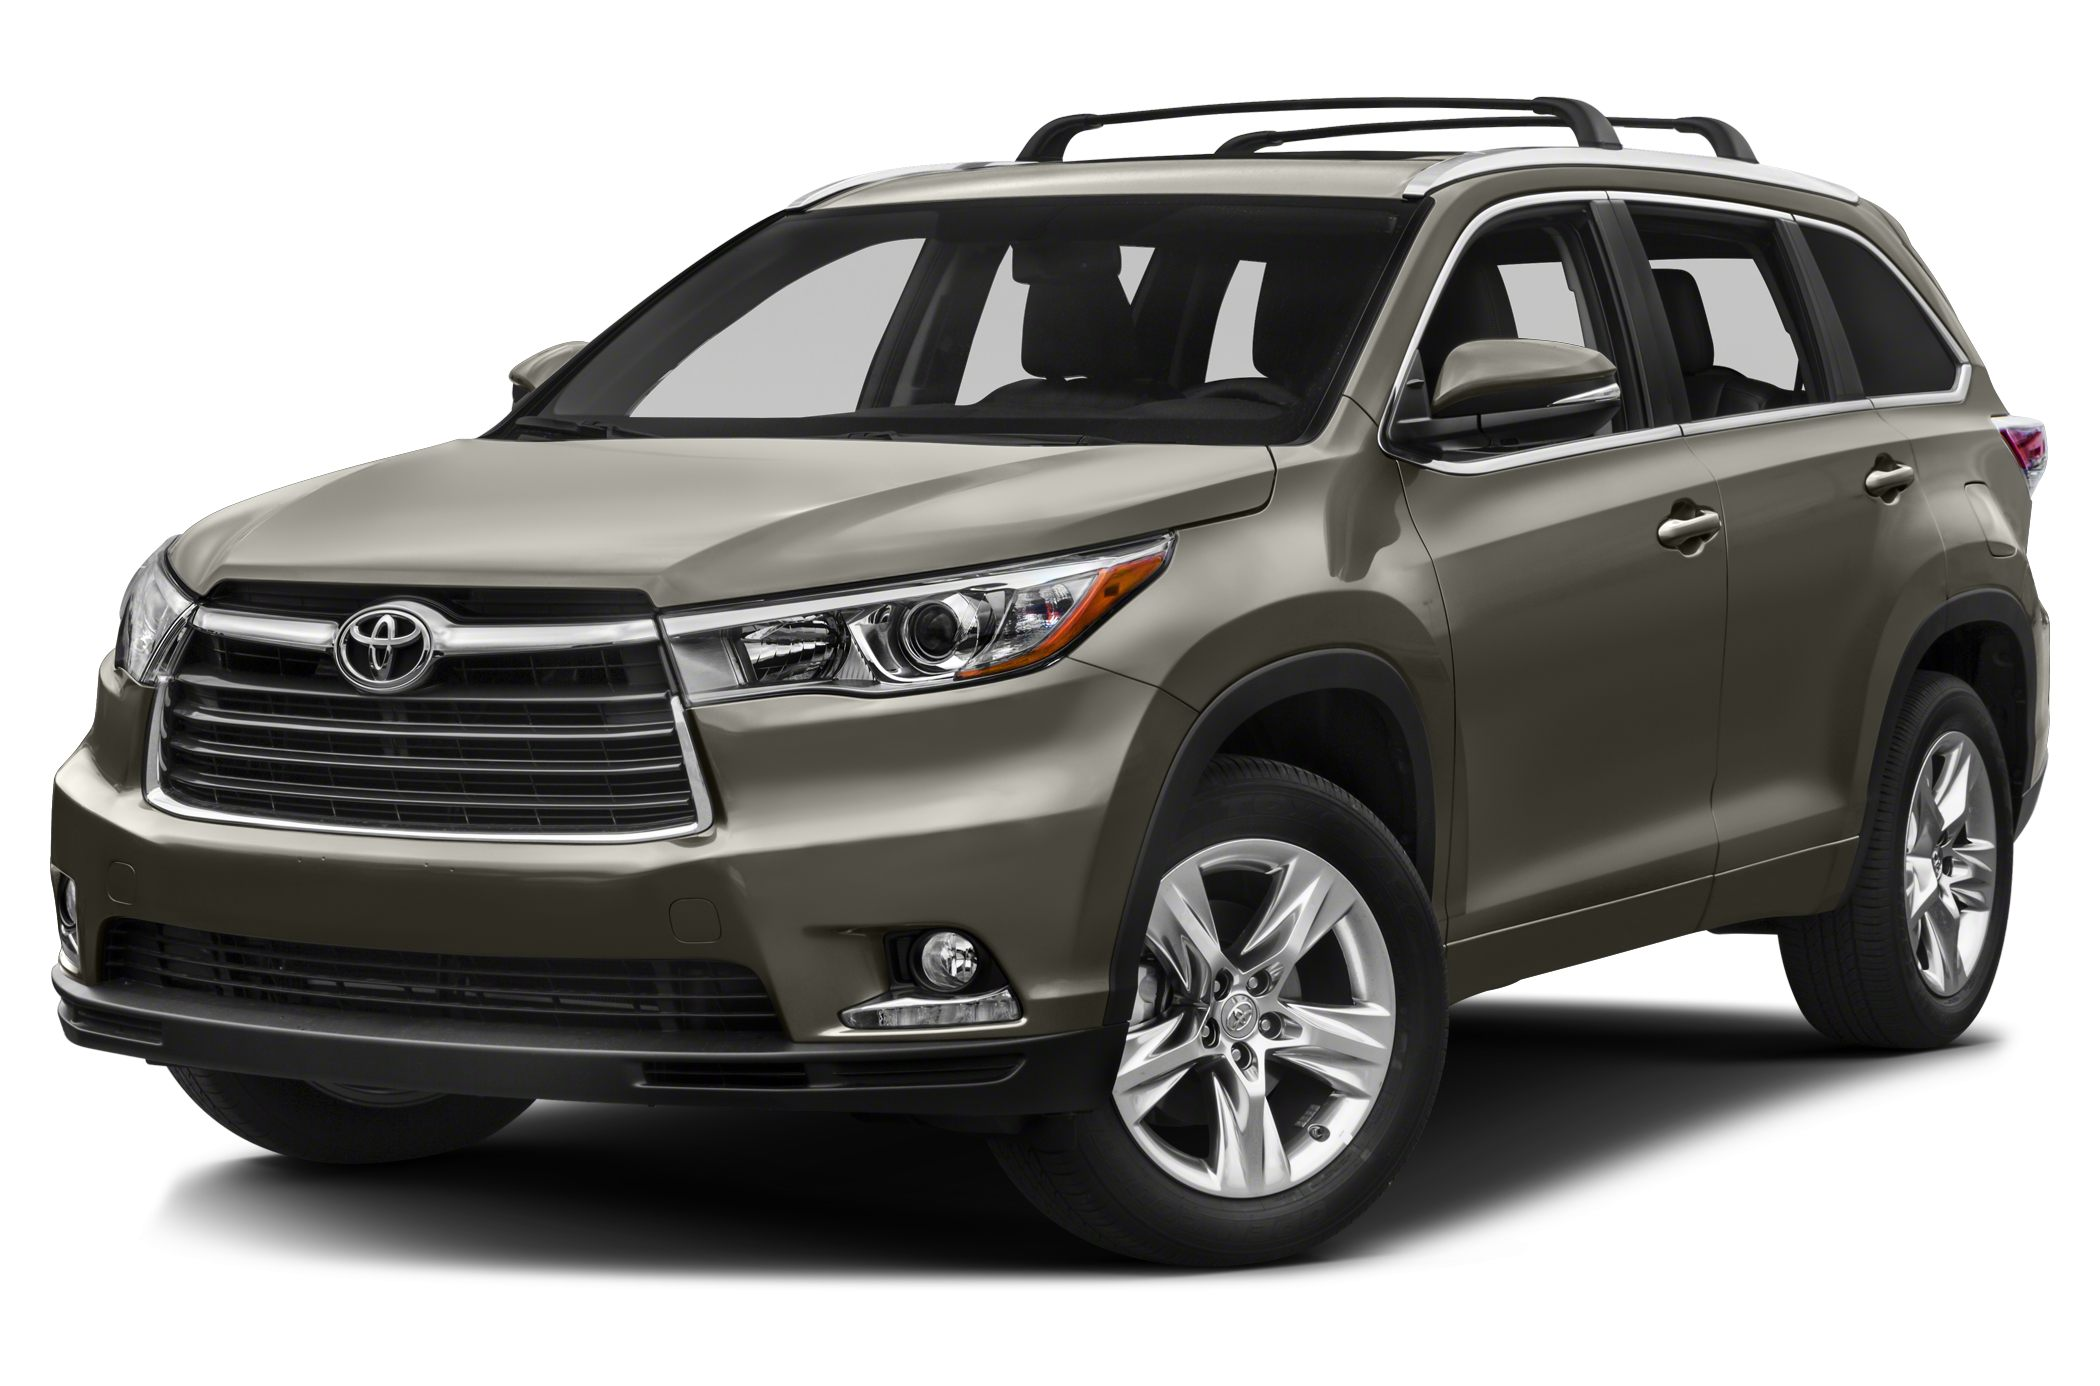 Toyota Highlander Lease >> 2015 Toyota Highlander Deals Prices Incentives Leases Carsdirect